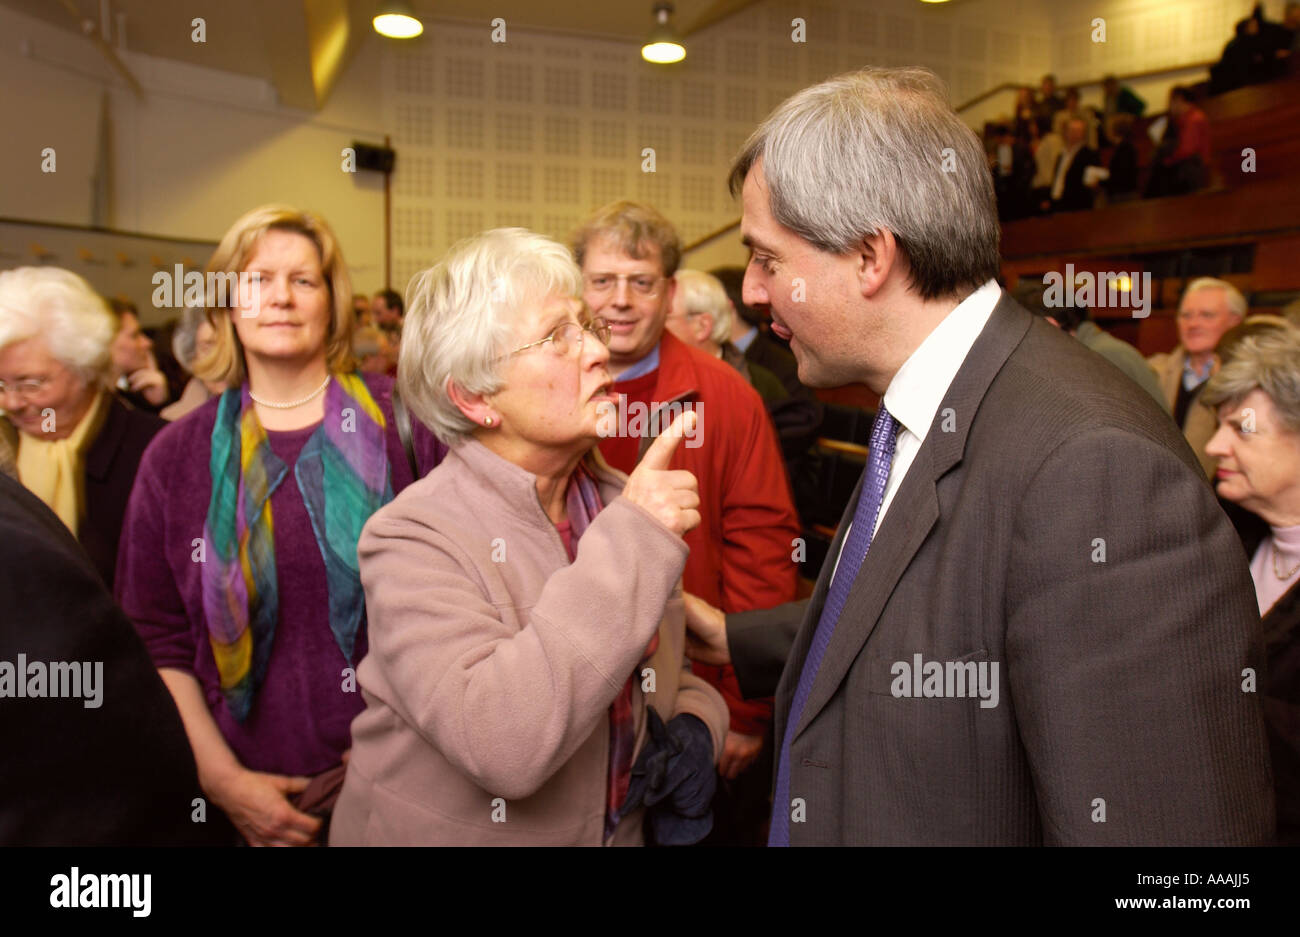 A LIBERAL DEMOCRAT MEMBER REMONSTRATES WITH LEADERSHIP CONTENDER CHRIS HUHNE - Stock Image